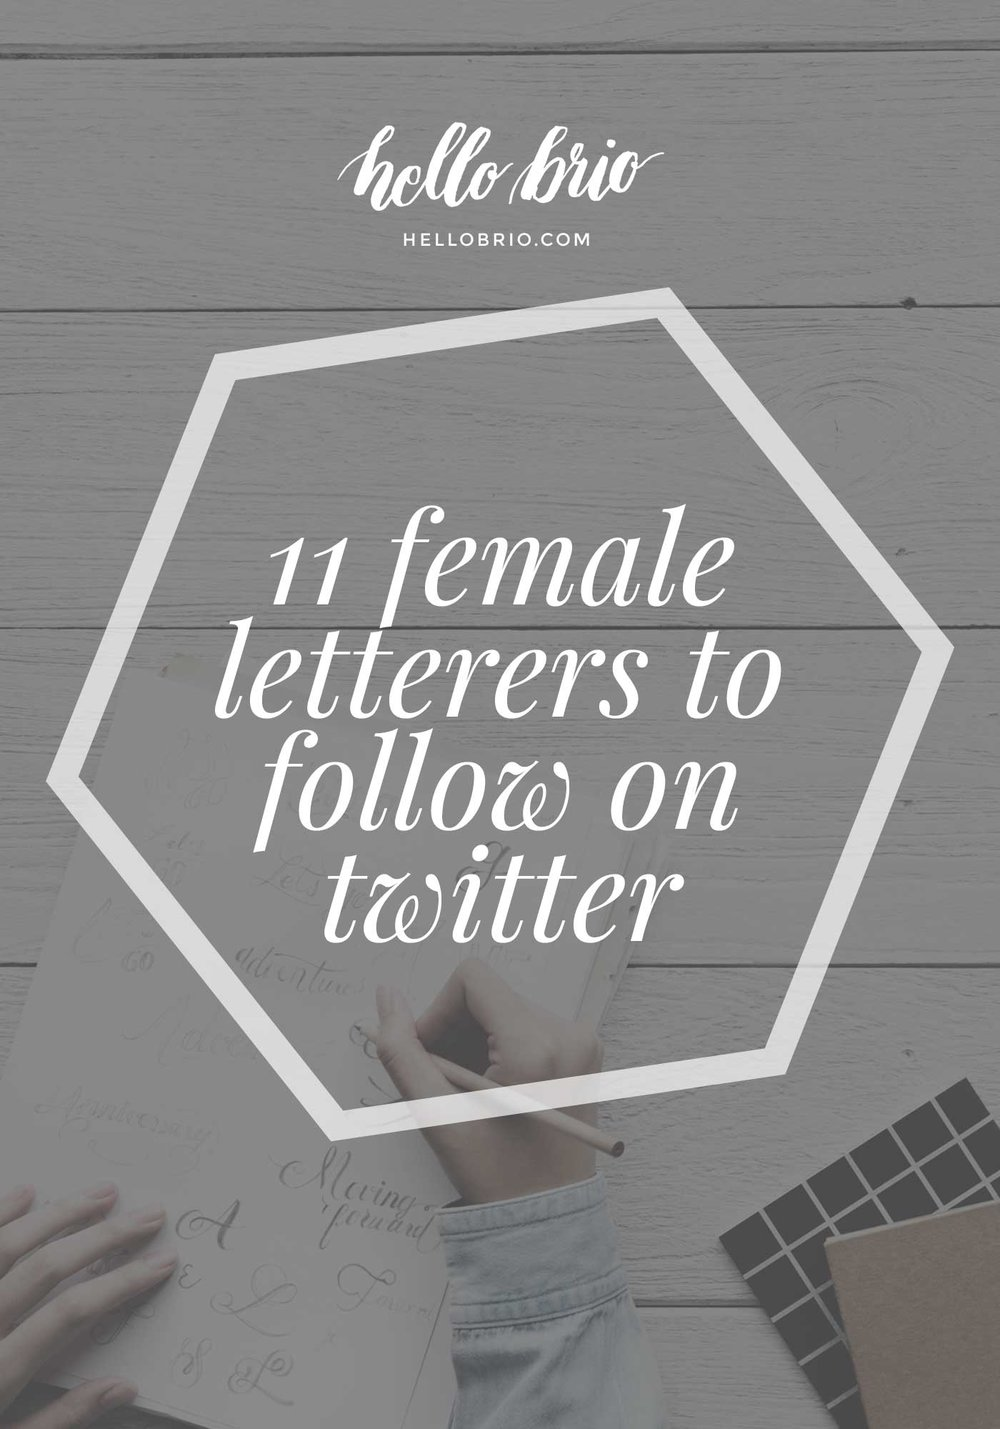 11 female hand letterers to follow on twitter